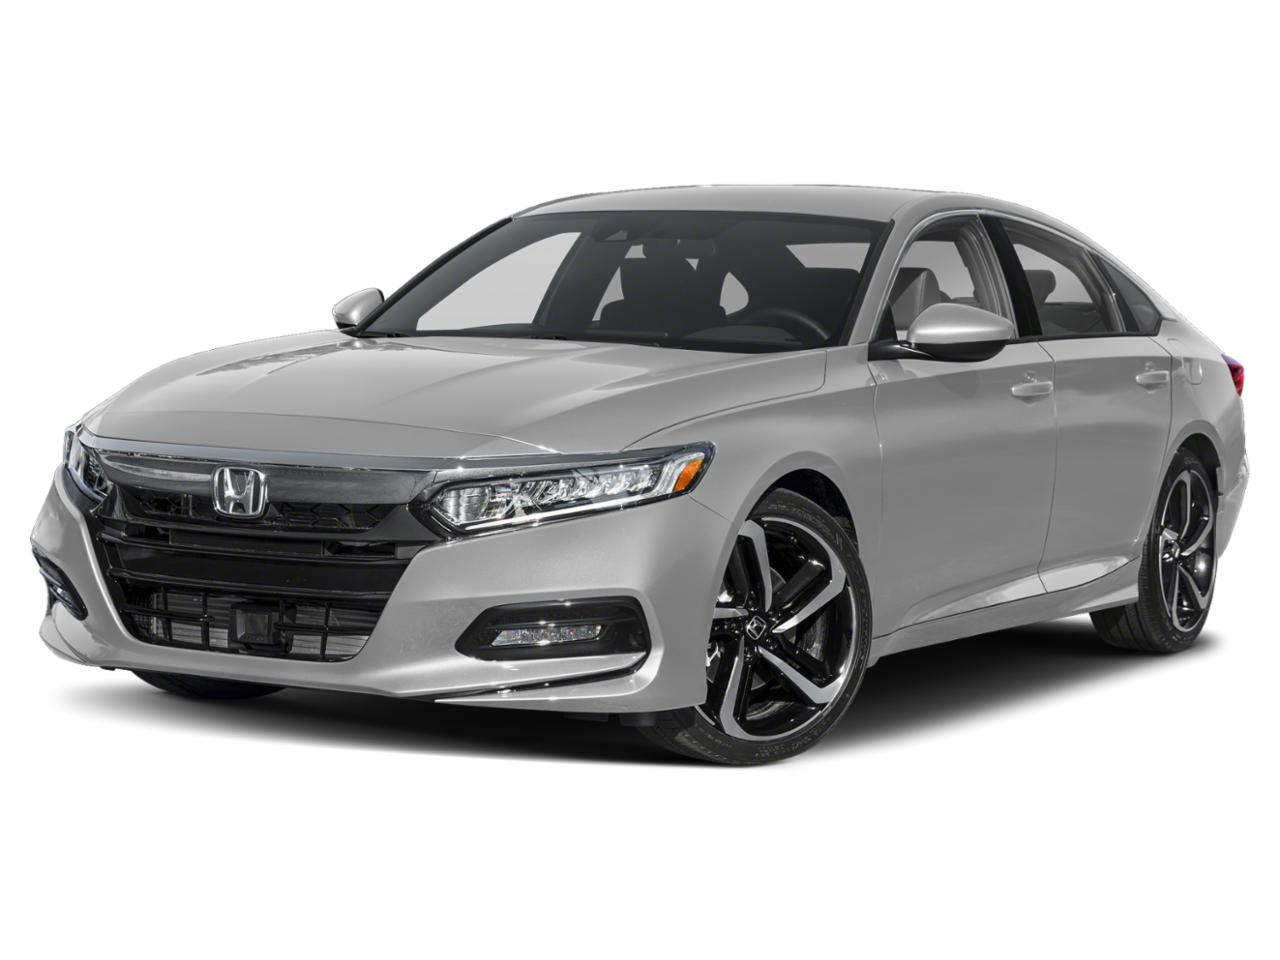 2020 Honda Accord Sedan SPORT 2.0T 4dr Car Slide